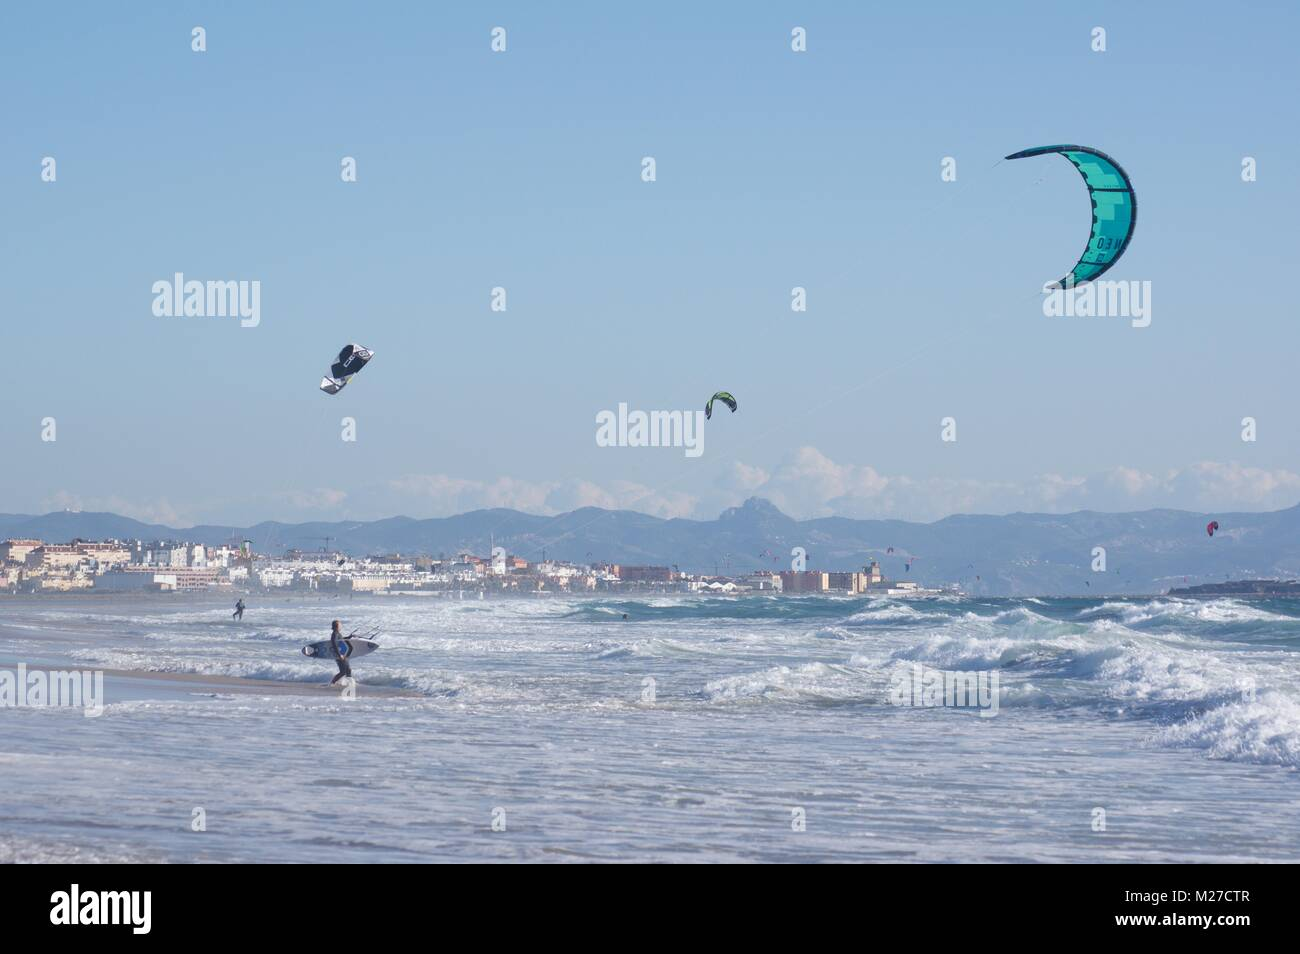 Kitesurfers at Los Lances beach with Tarifa and Morocco in the background - Stock Image